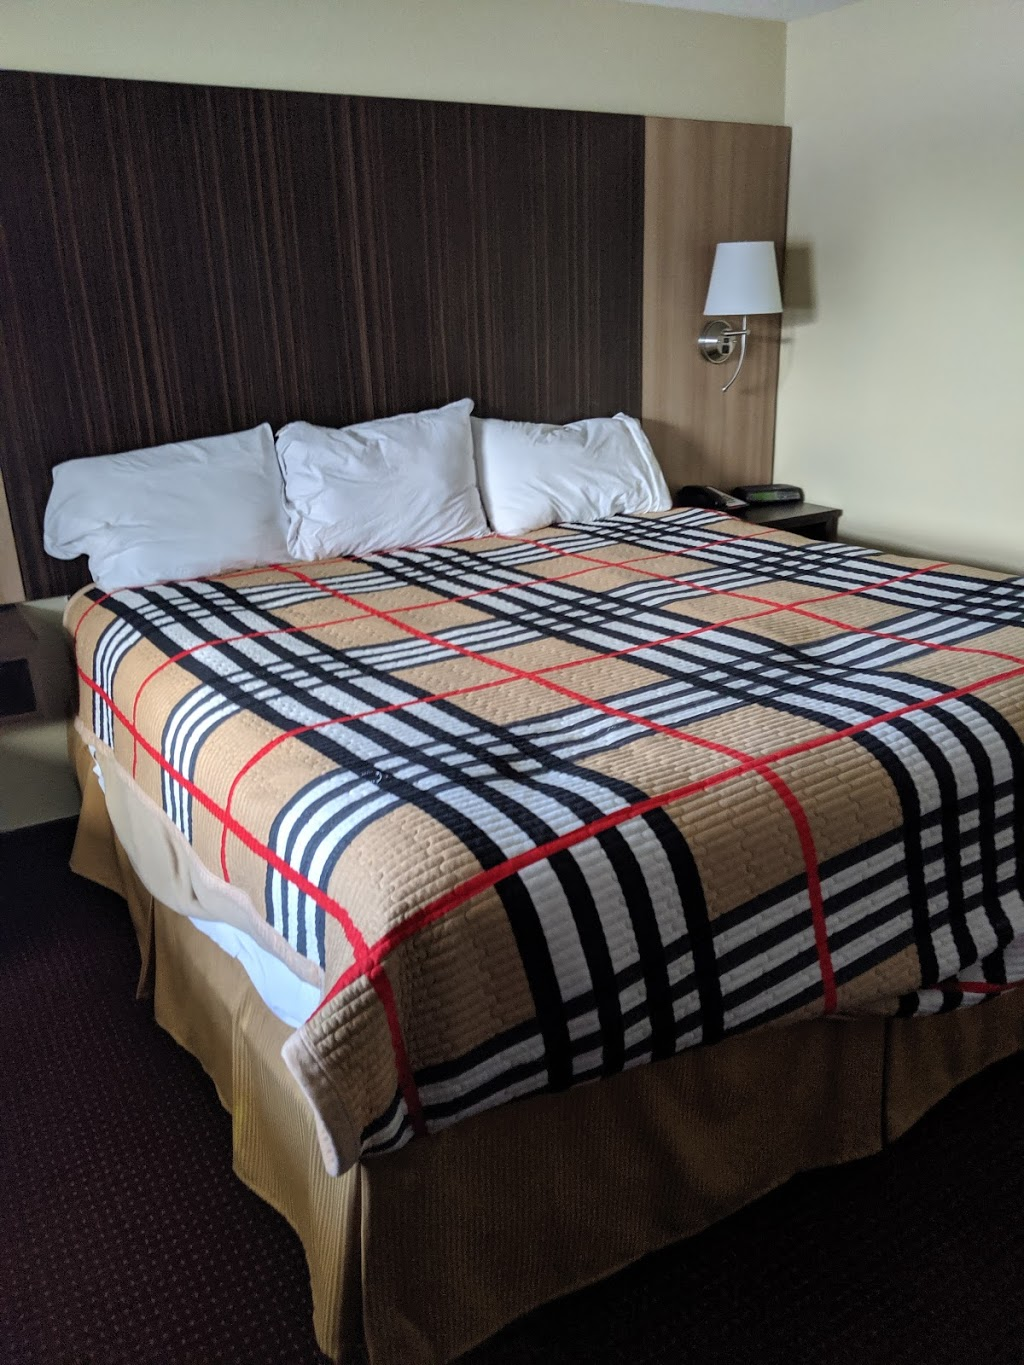 Red Carpet Inn | lodging | 1900 Niagara Falls Blvd, Tonawanda, NY 14150, USA | 7166921422 OR +1 716-692-1422